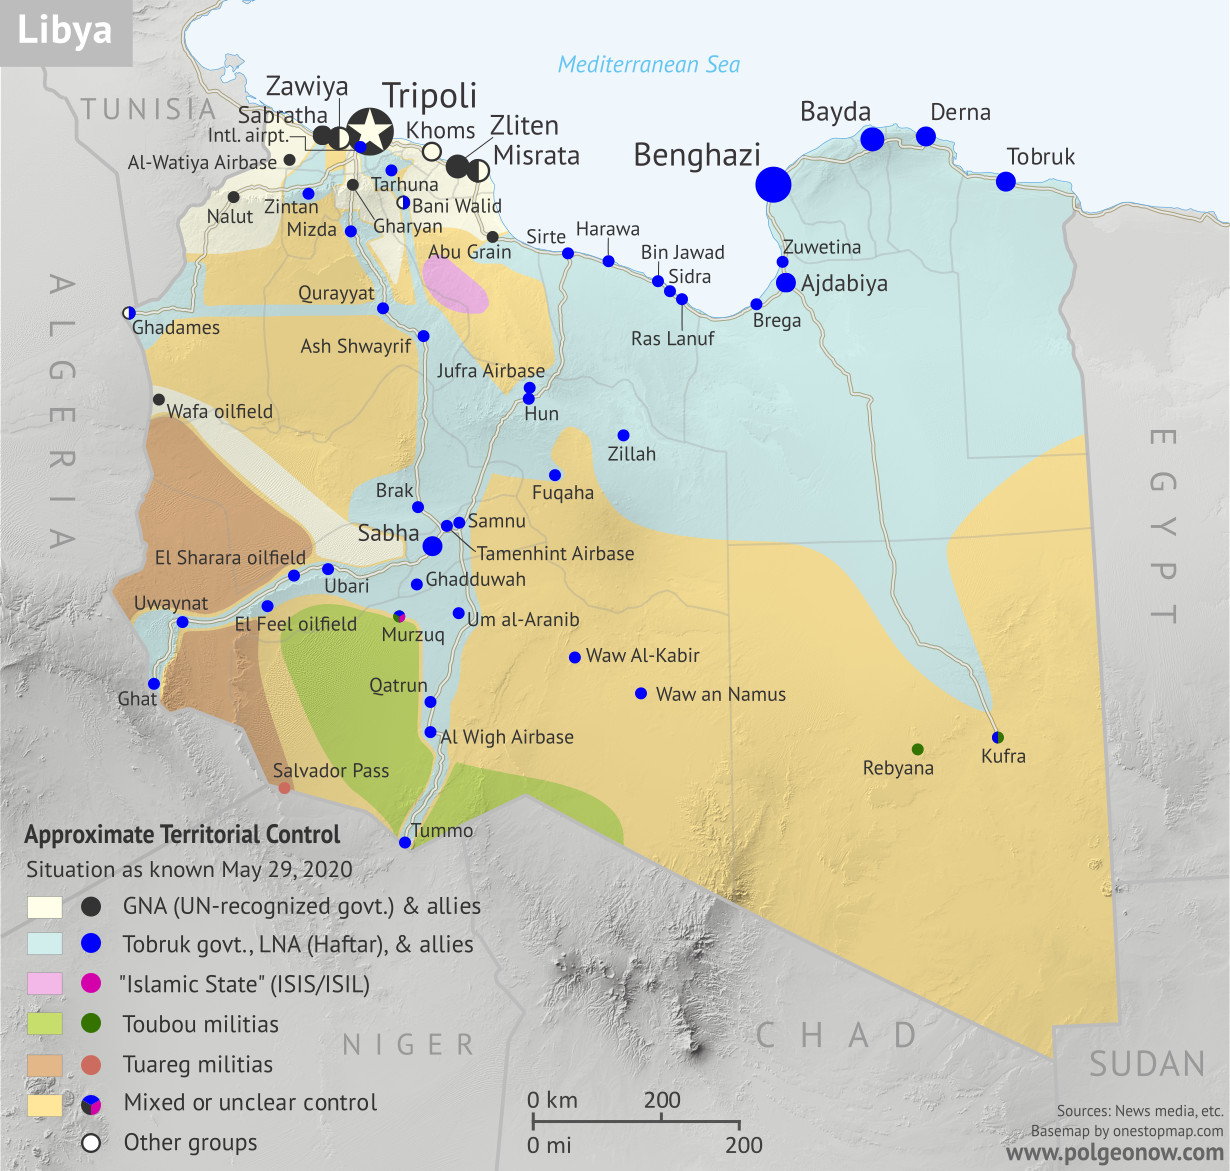 Libya: Who controls what? A concise, professional map of who controls Libya now (May 2020). Shows detailed territorial control in the Libyan Civil War as of May 29, 2020, including all major parties (Government of National Accord (GNA); Tobruk House of Representatives, General Haftar's Libyan National Army (LNA), and allies; Tuareg and Toubou (Tebu, Tubu) militias in the south; and the so-called Islamic State (ISIS/ISIL)). Includes terrain, major roads, and recent locations of interest including Al-Watiyah Airbase, Tarhuna, Mizda, and more. Colorblind accessible.